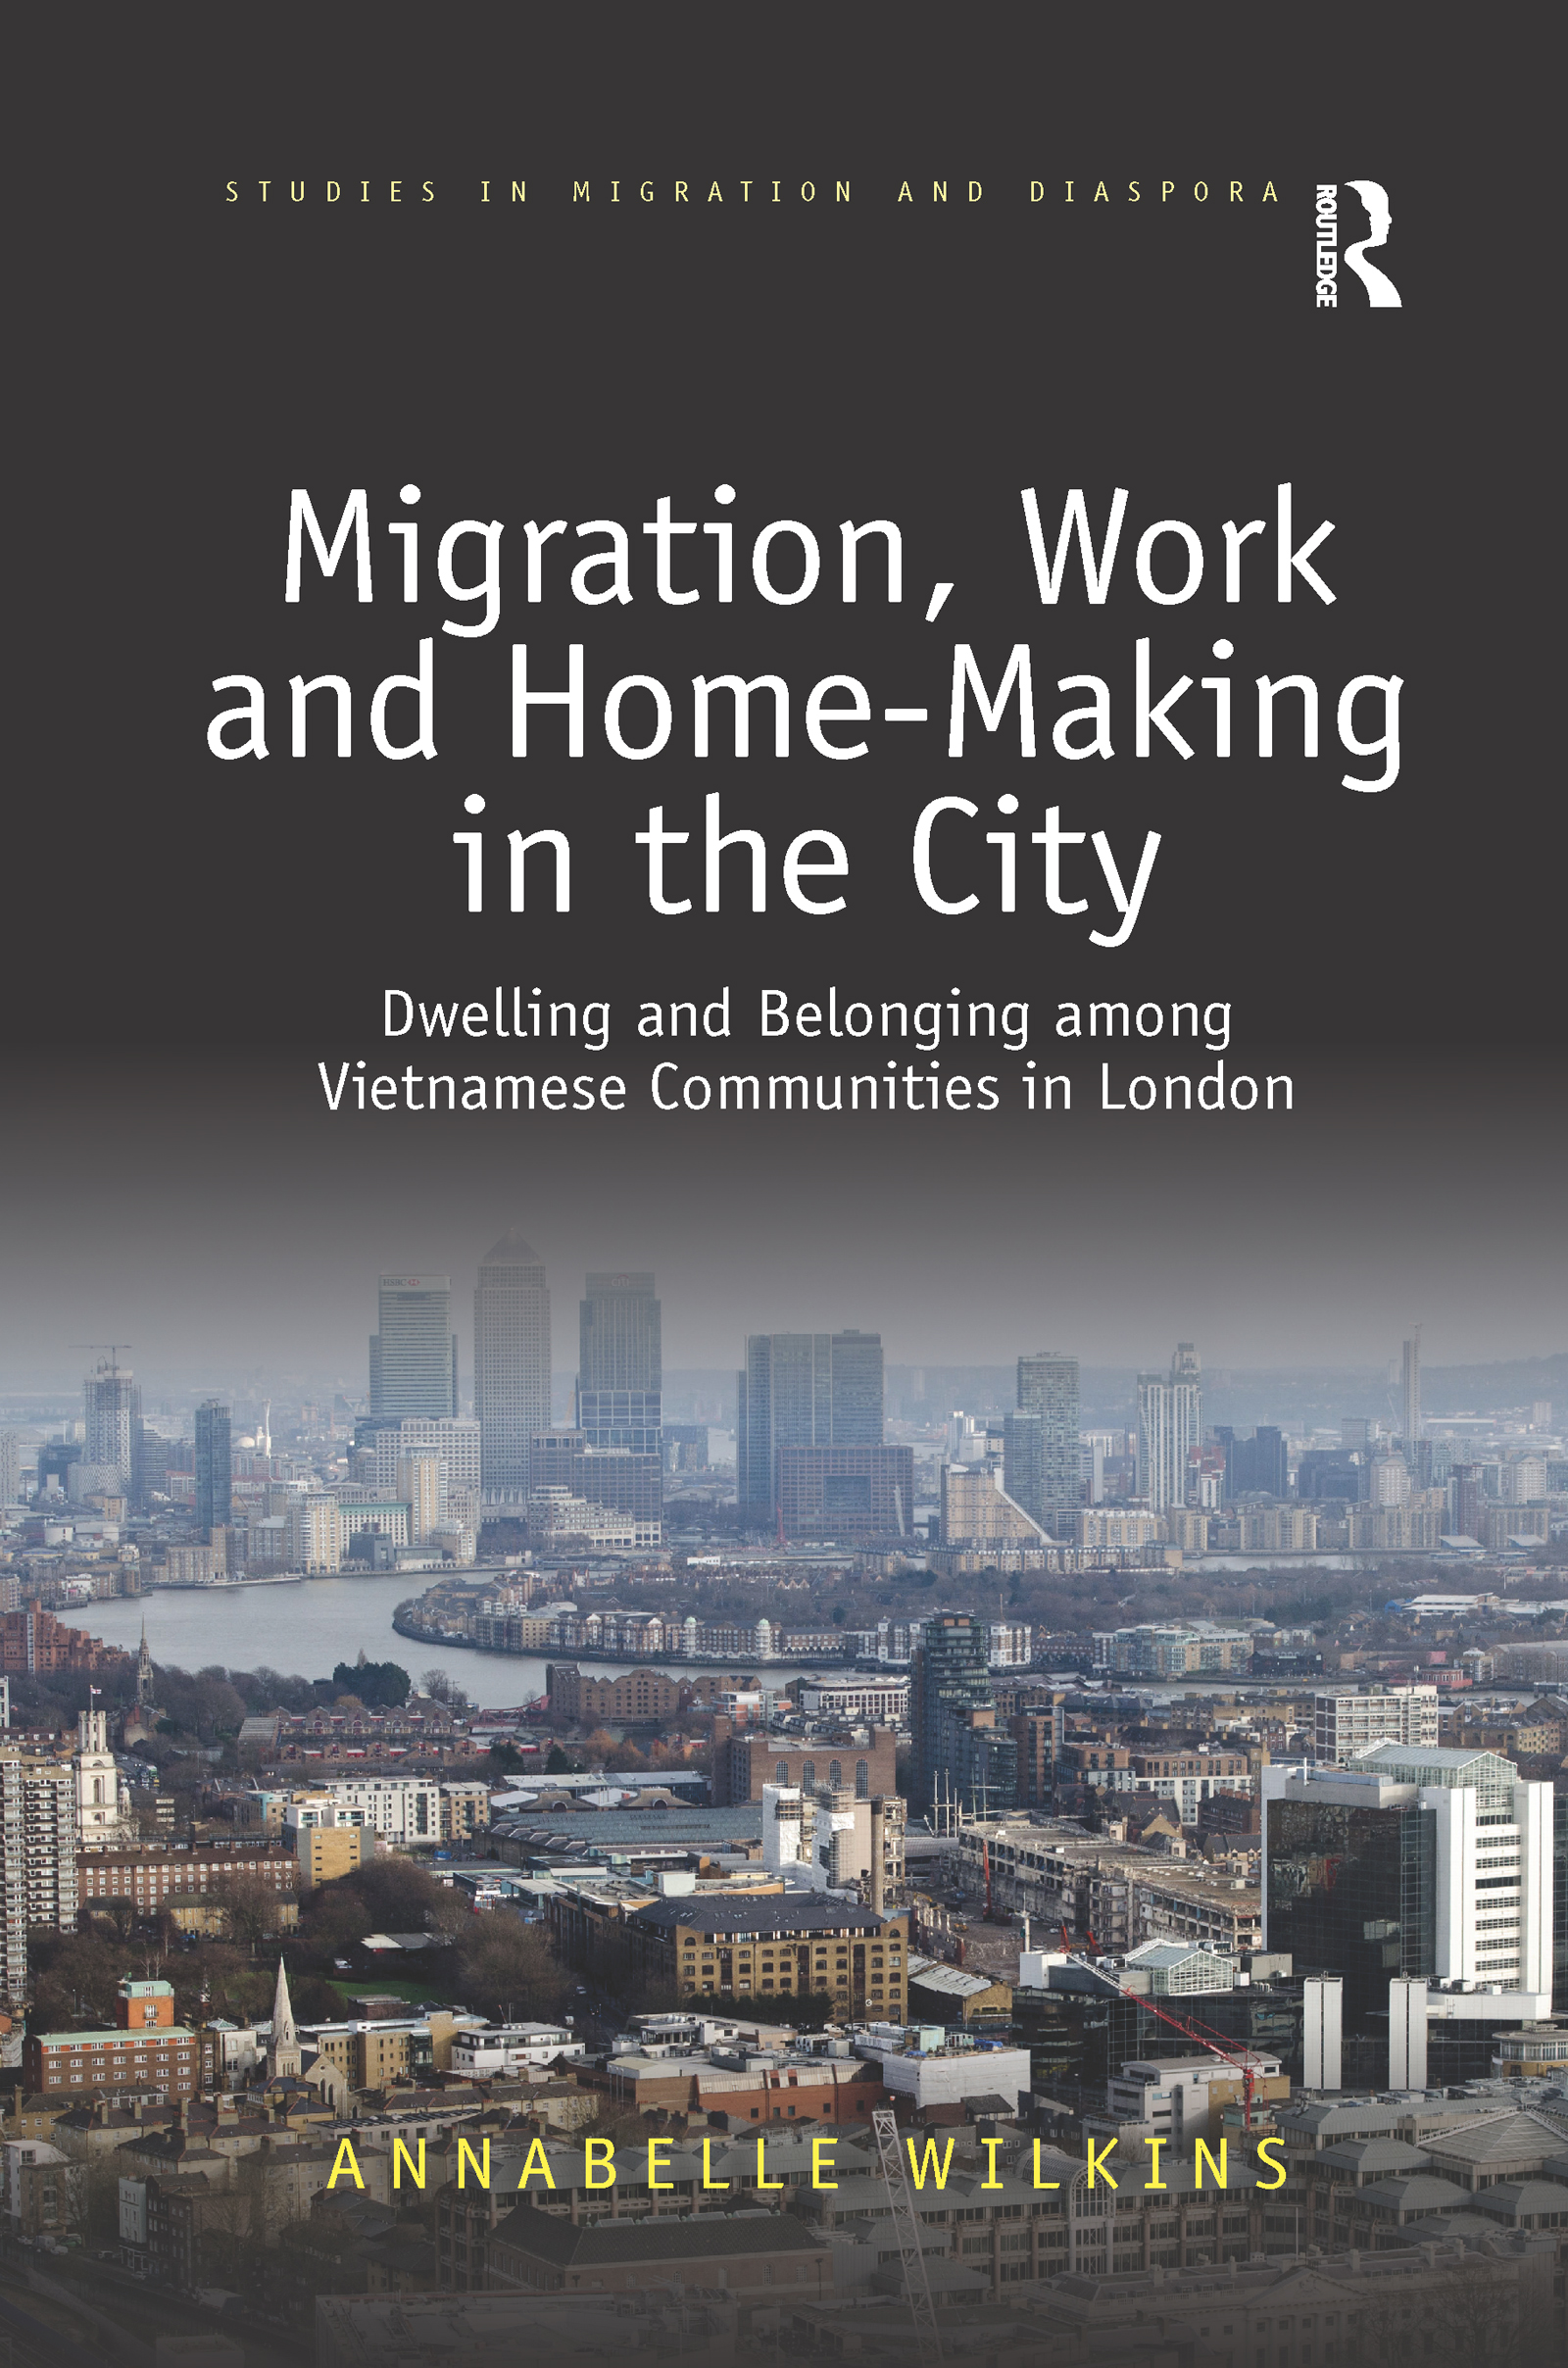 Migration, Work and Home-Making in the City